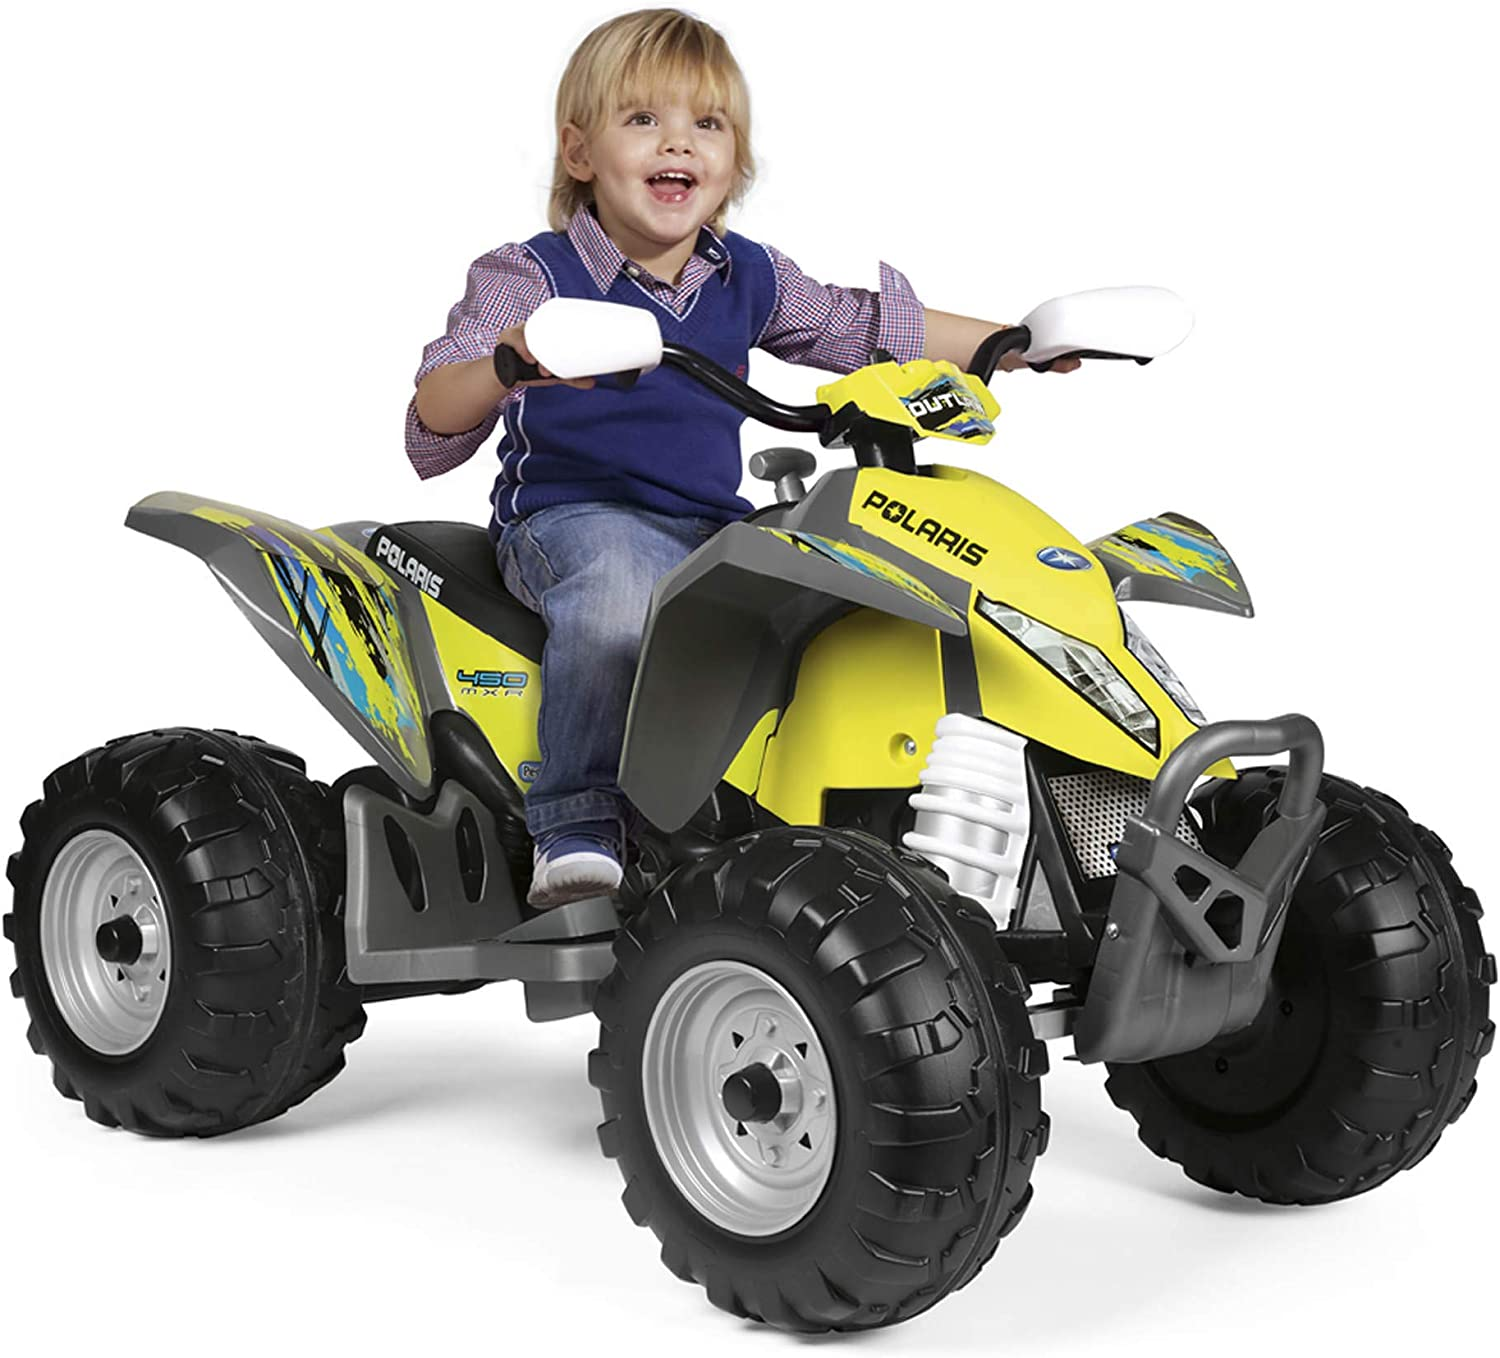 Peg Perego Polaris Outlaw Citrus,